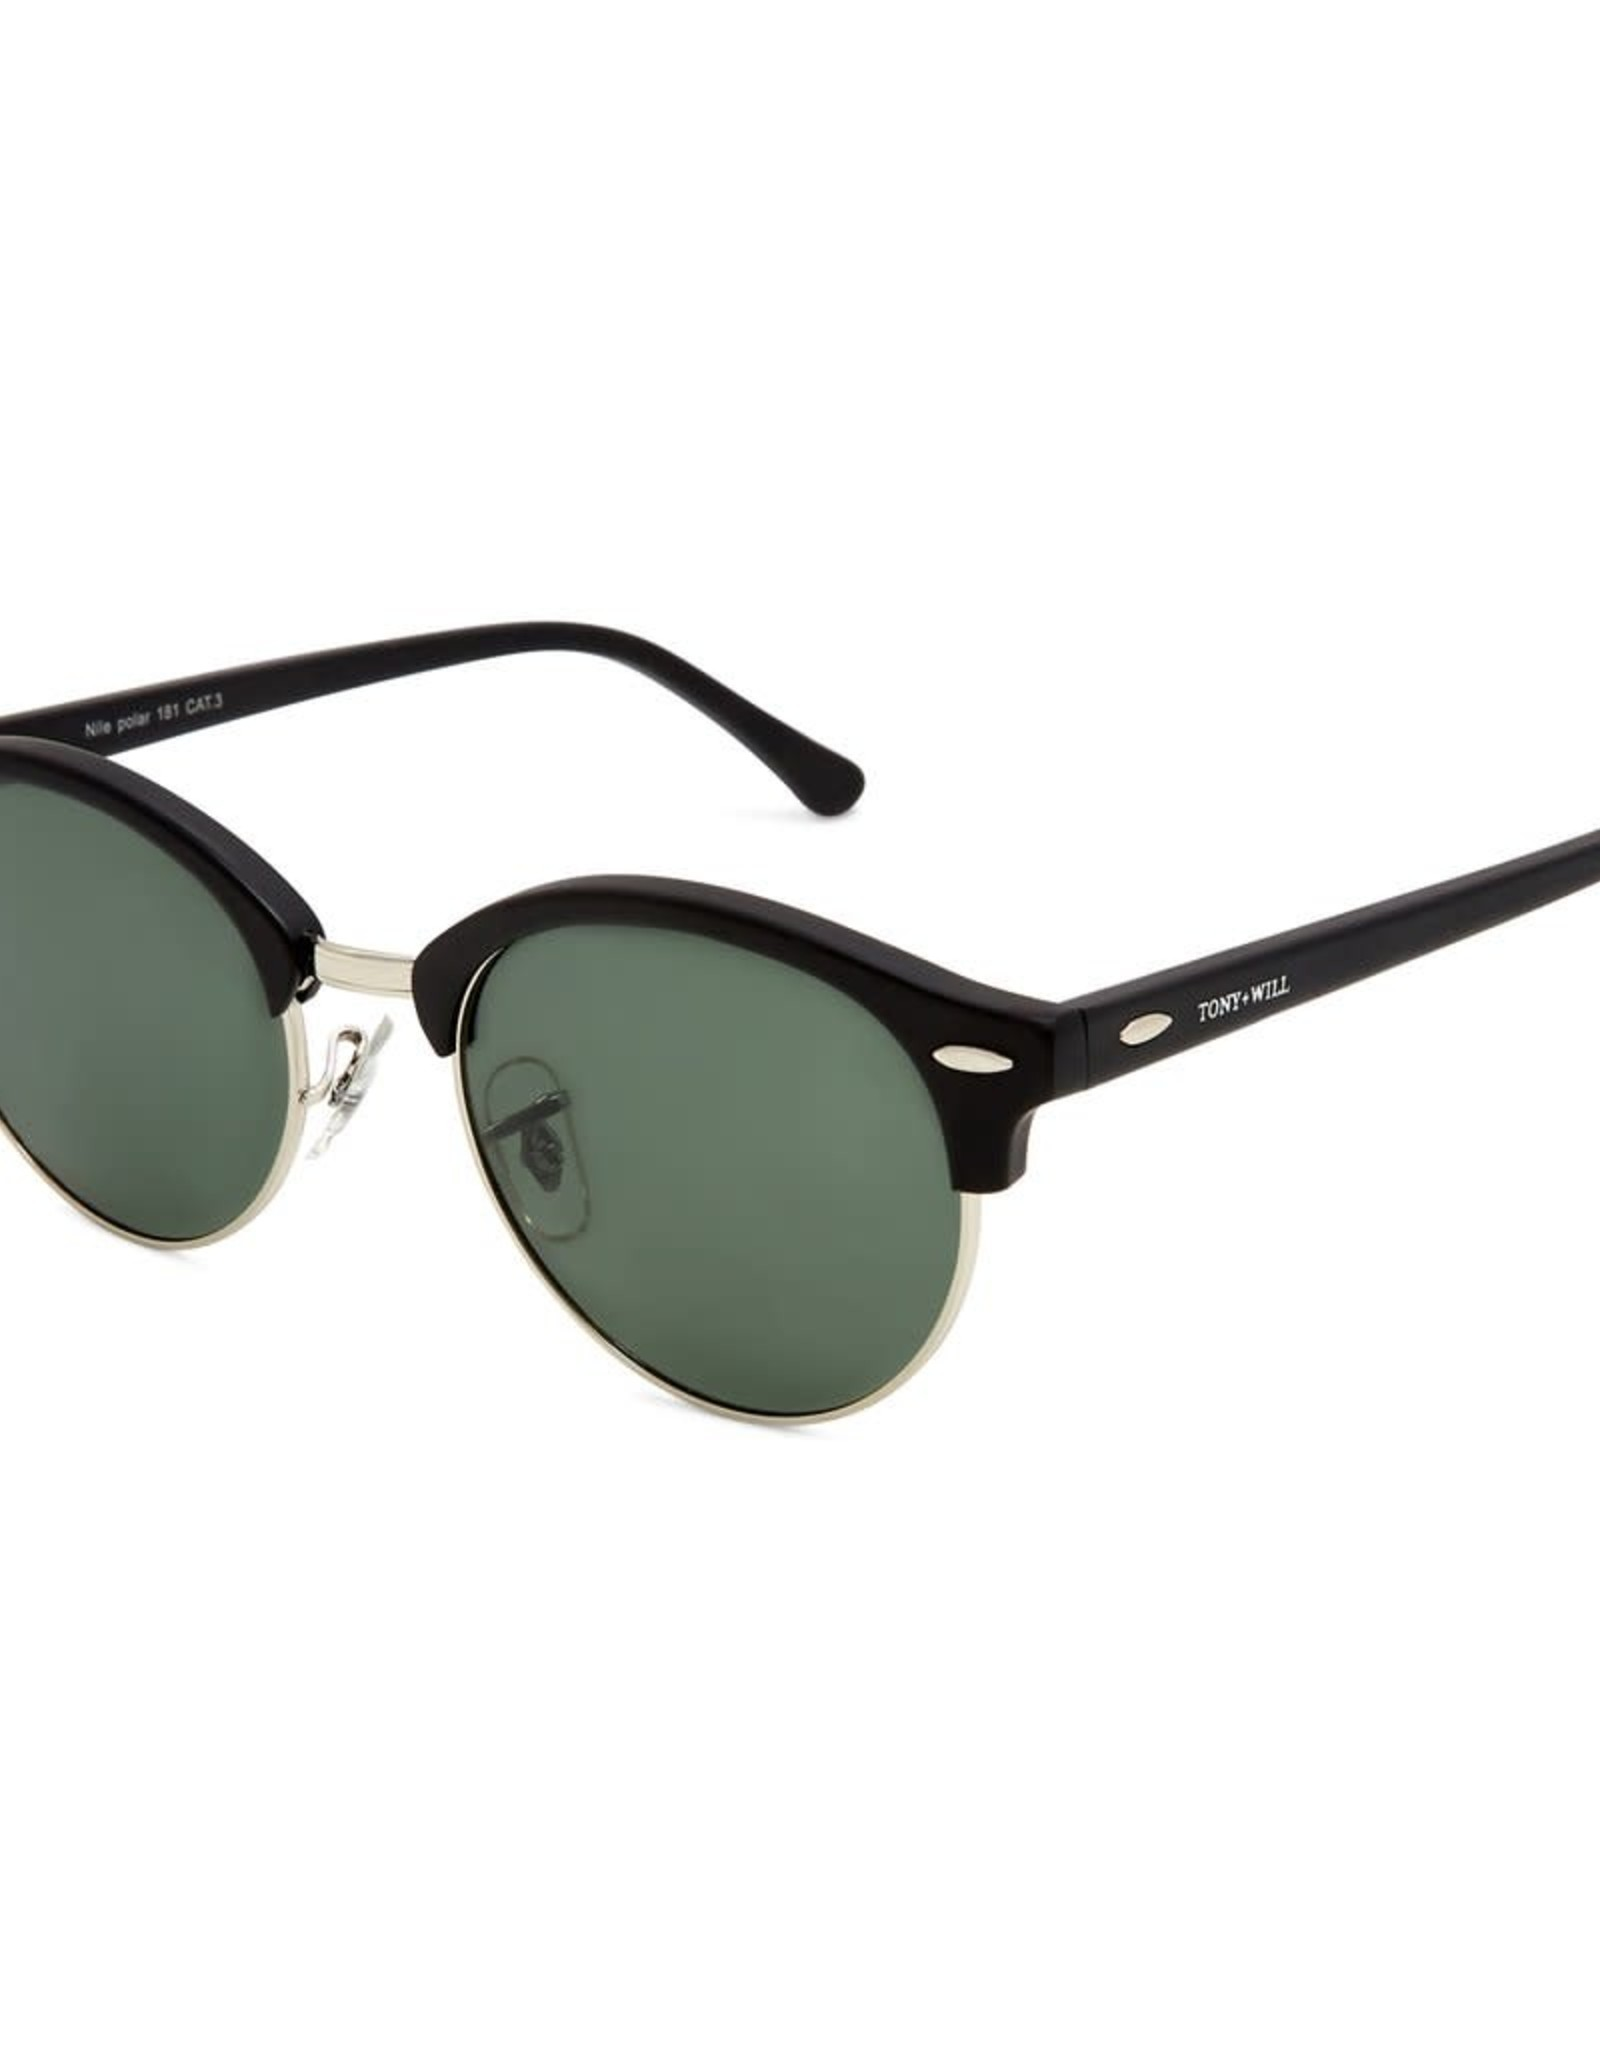 Nile Polarised Round Vintage Sunglasses with G15 lens